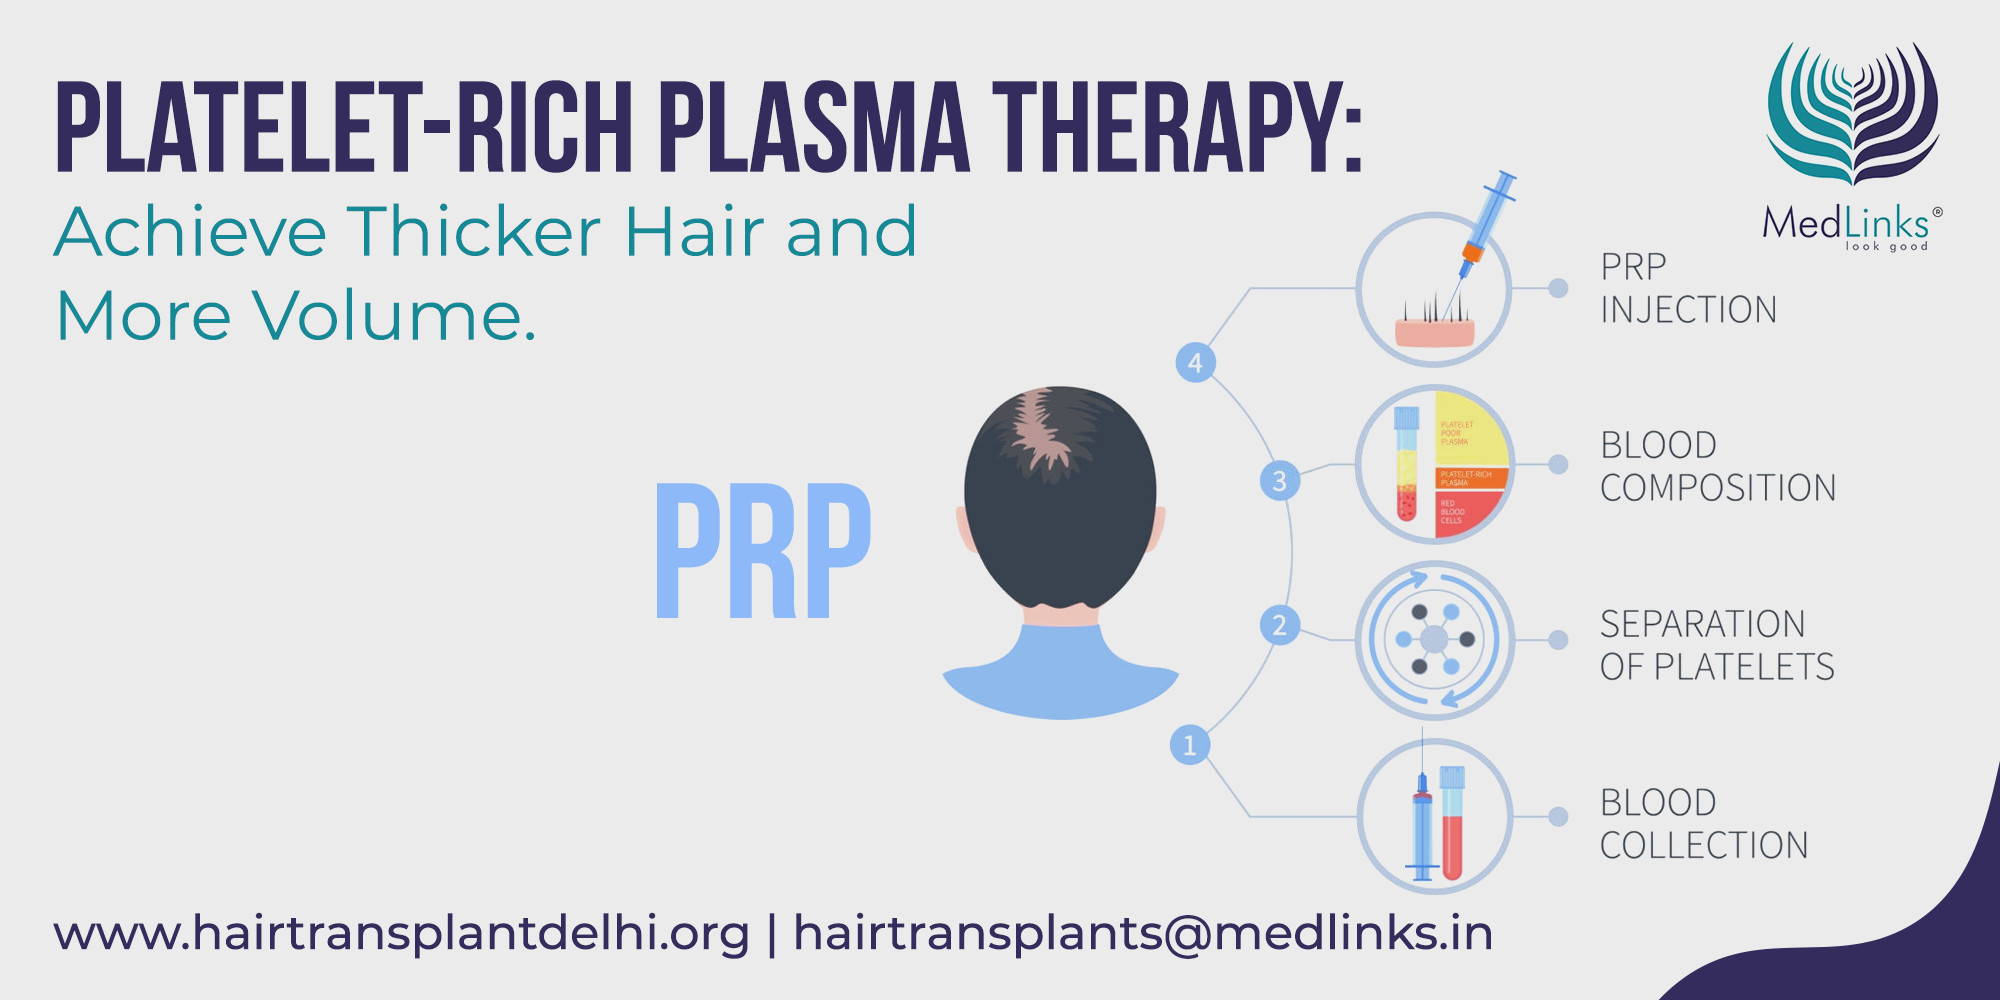 PRP for Hair Loss: Myth or Reality? Benefits, Cost & Side Effects